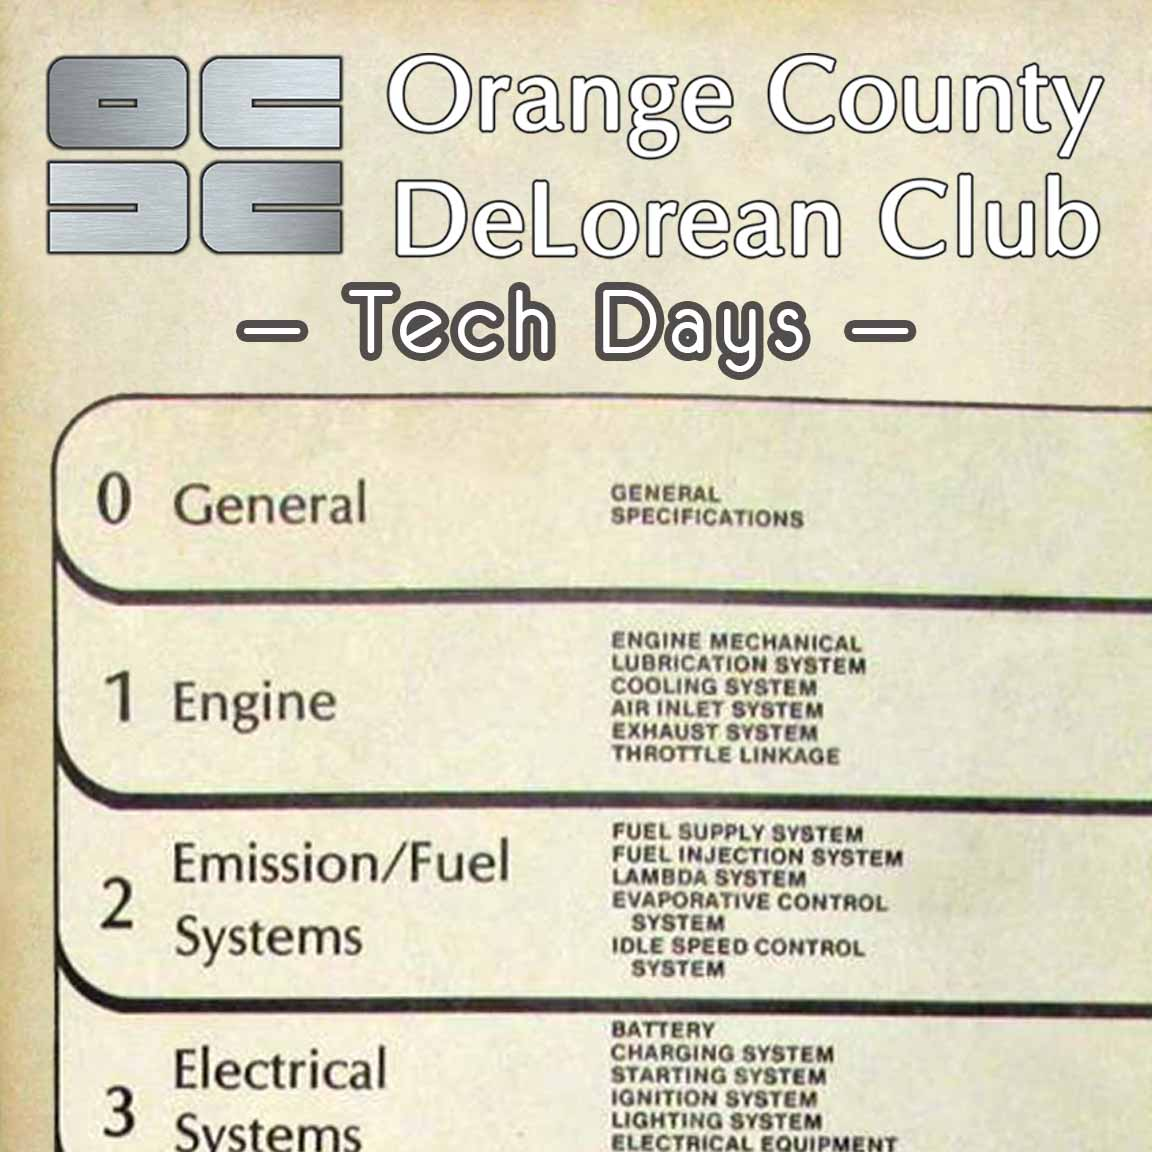 OCDC Tech Days | Orange County DeLorean Club